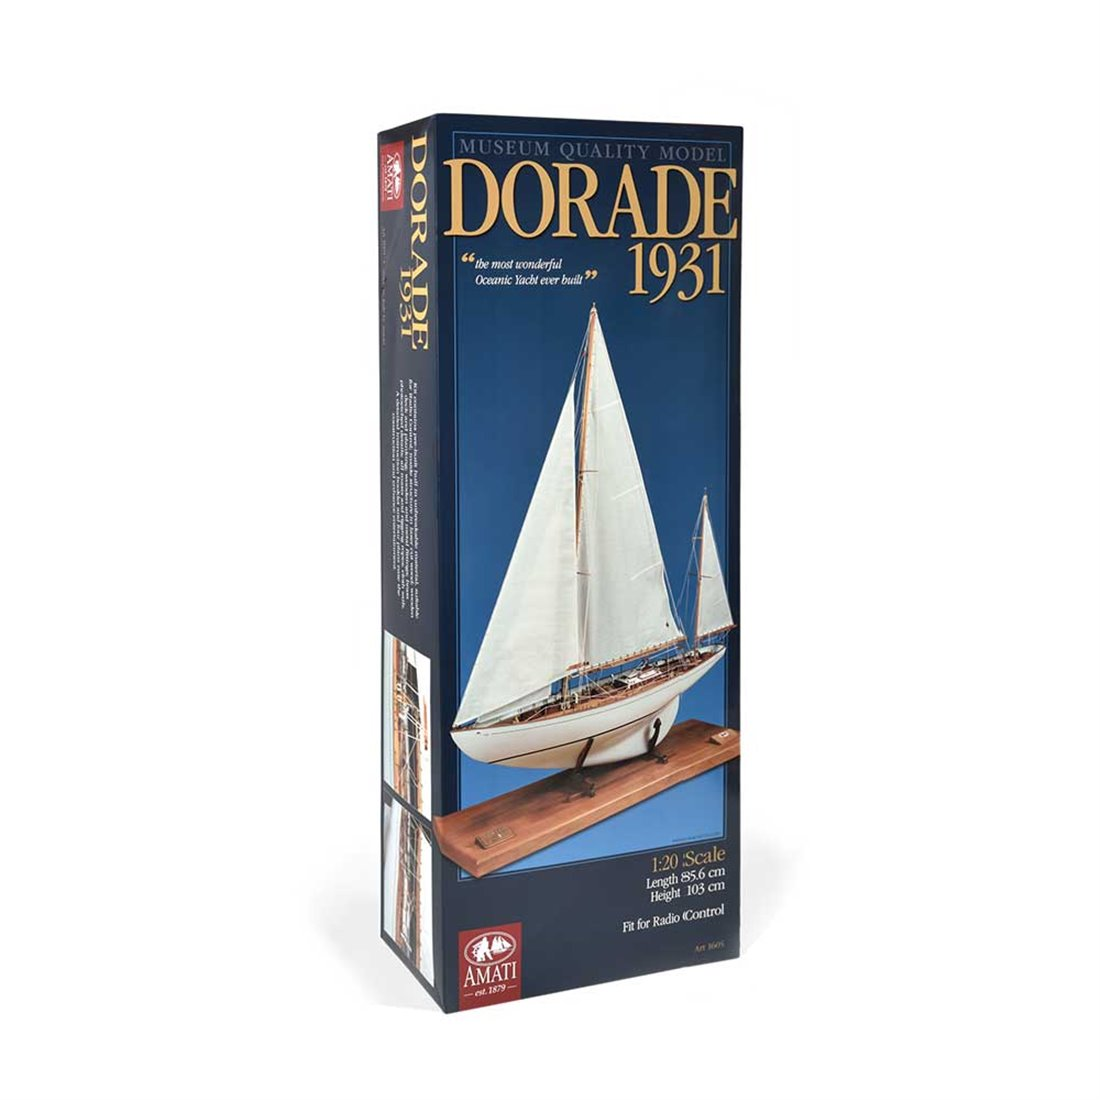 Dorade Racing Yacht